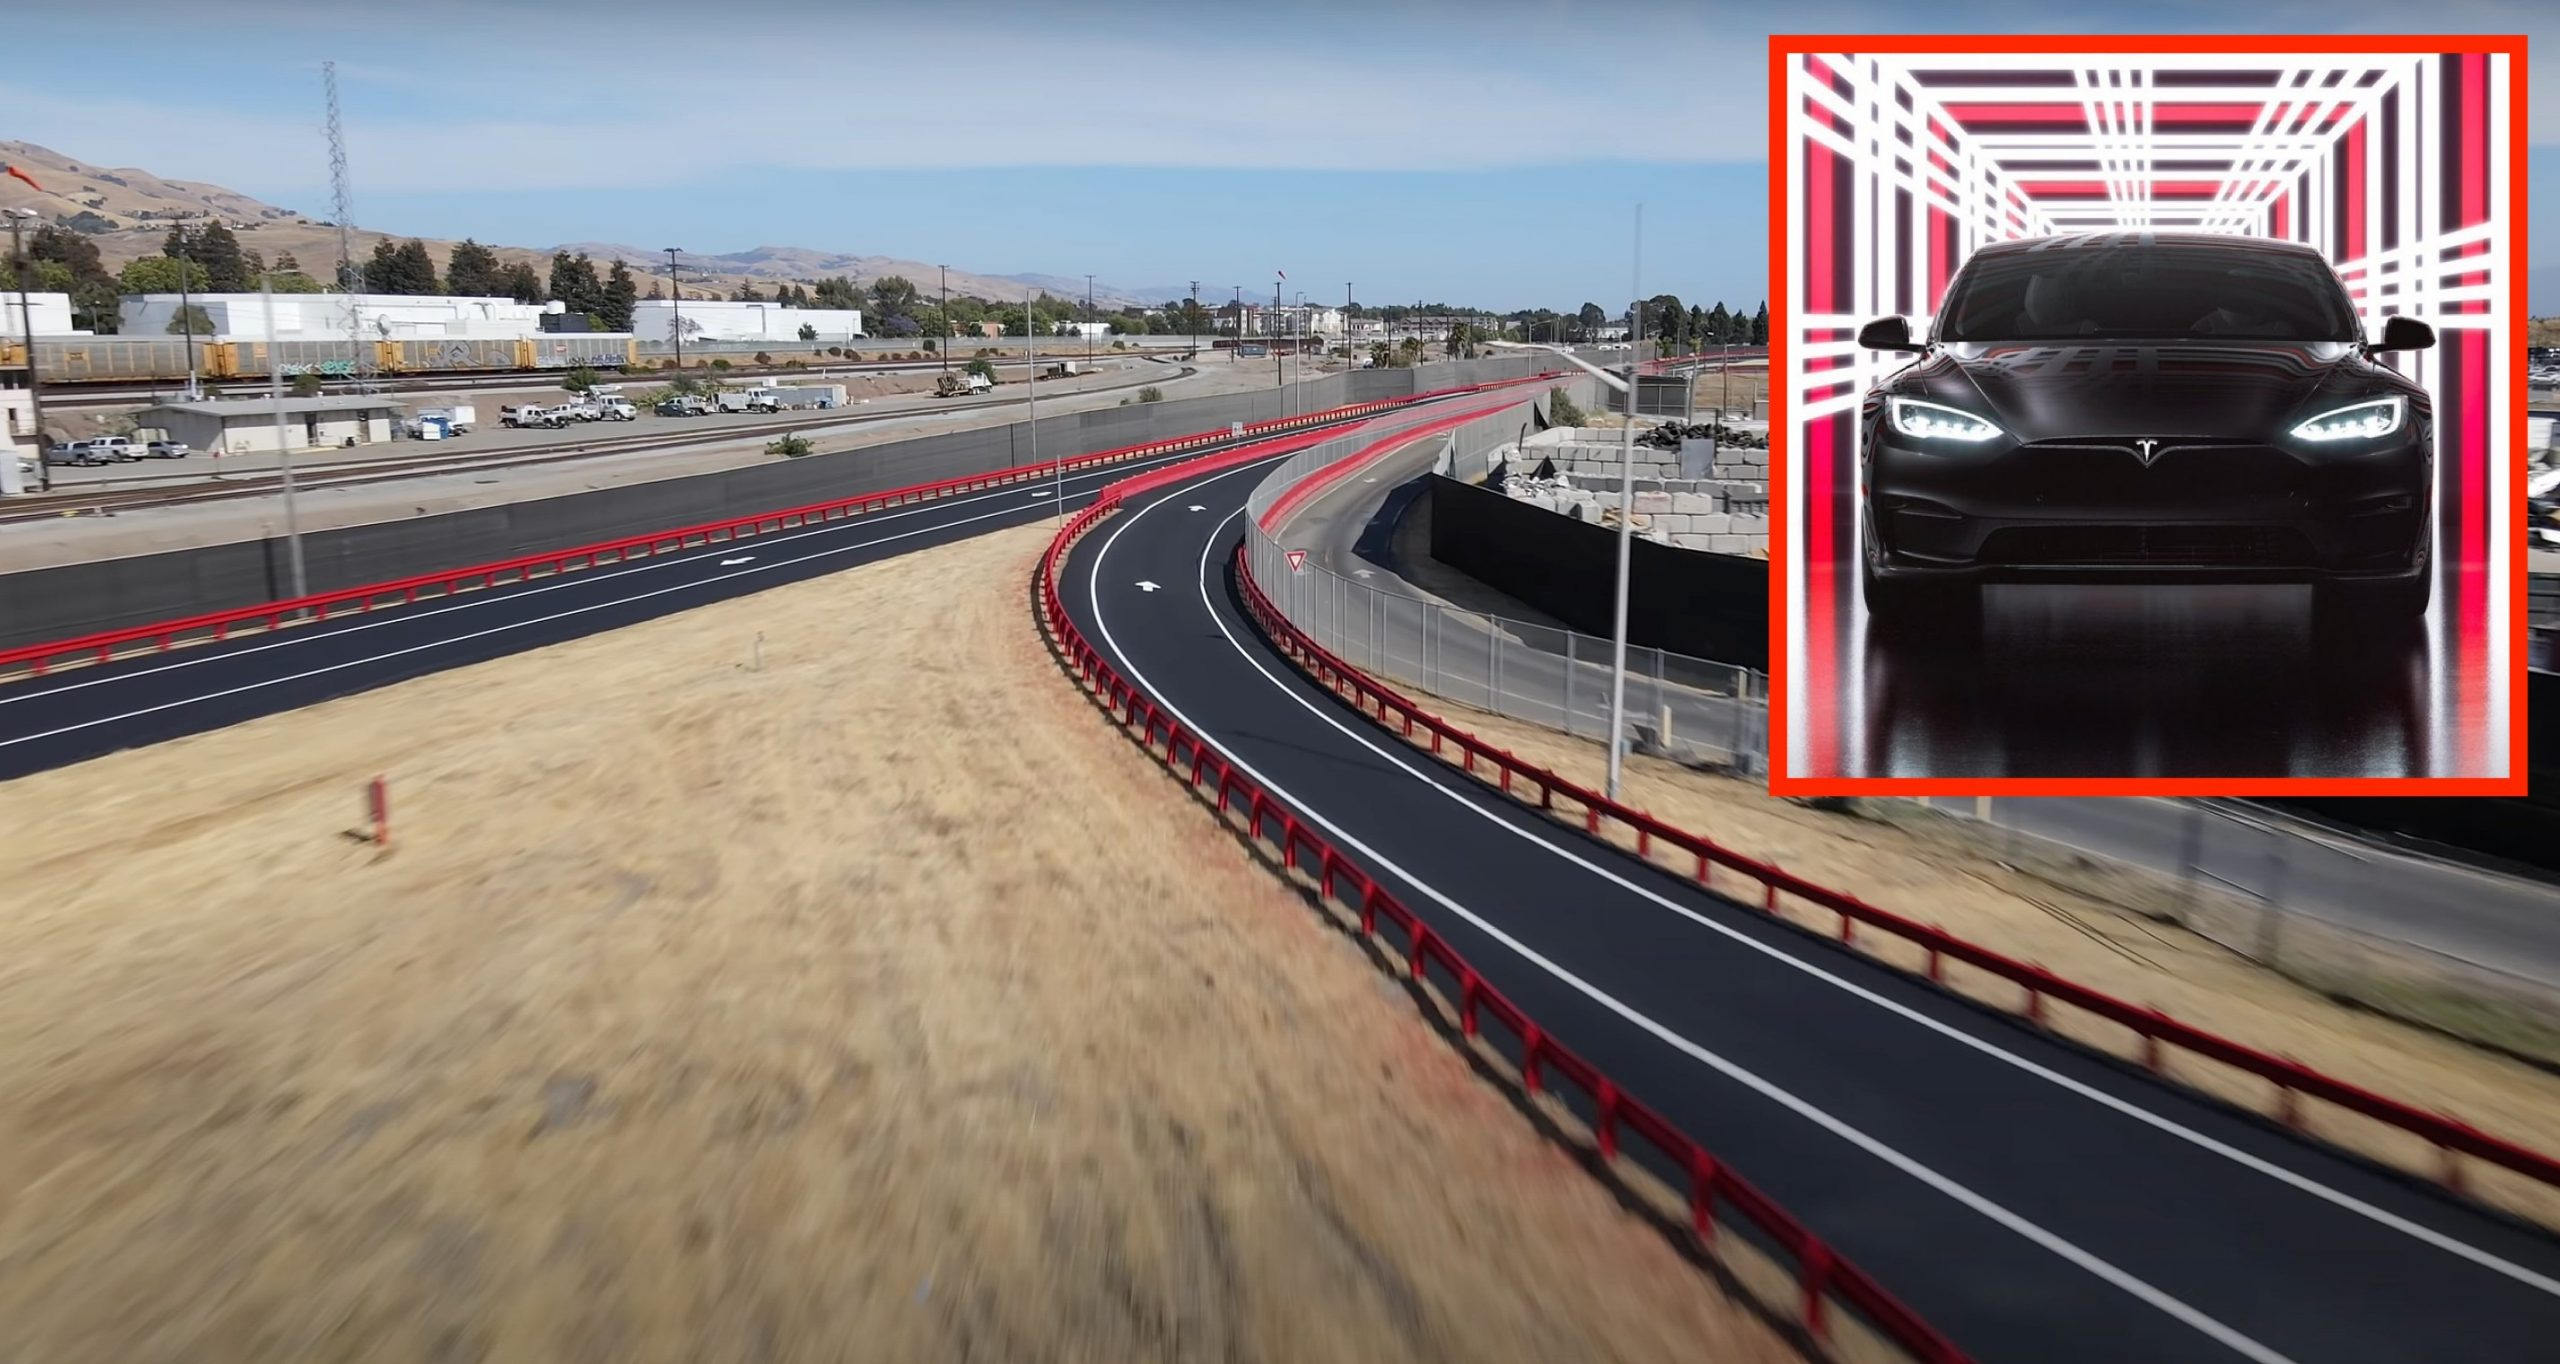 Tesla Fremont Factory test track gets redone in time for Model S Plaid  delivery event